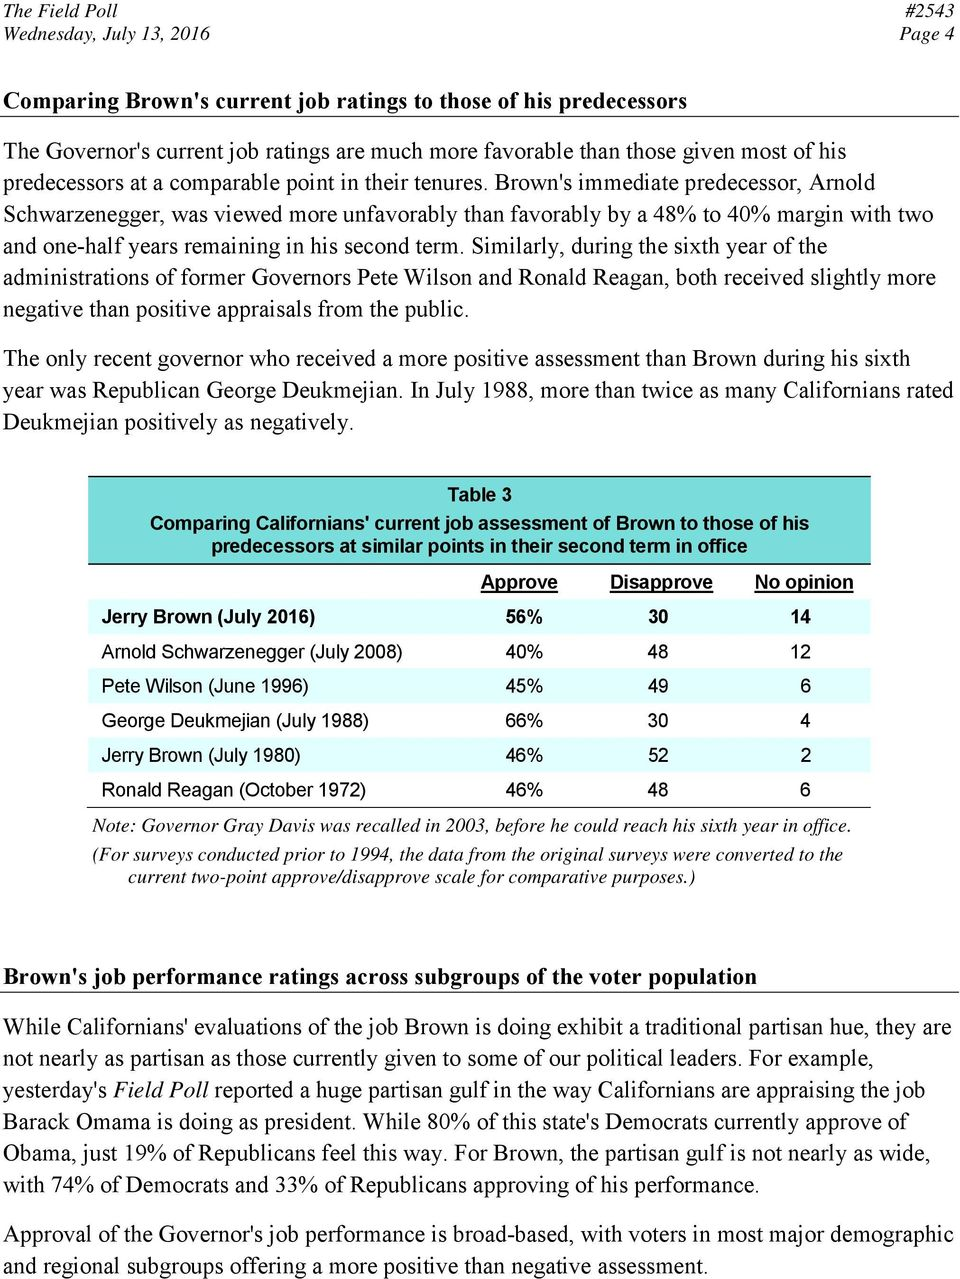 Brown's immediate predecessor, Arnold Schwarzenegger, was viewed more unfavorably than favorably by a 48% to 40% margin with two and one-half years remaining in his second term.